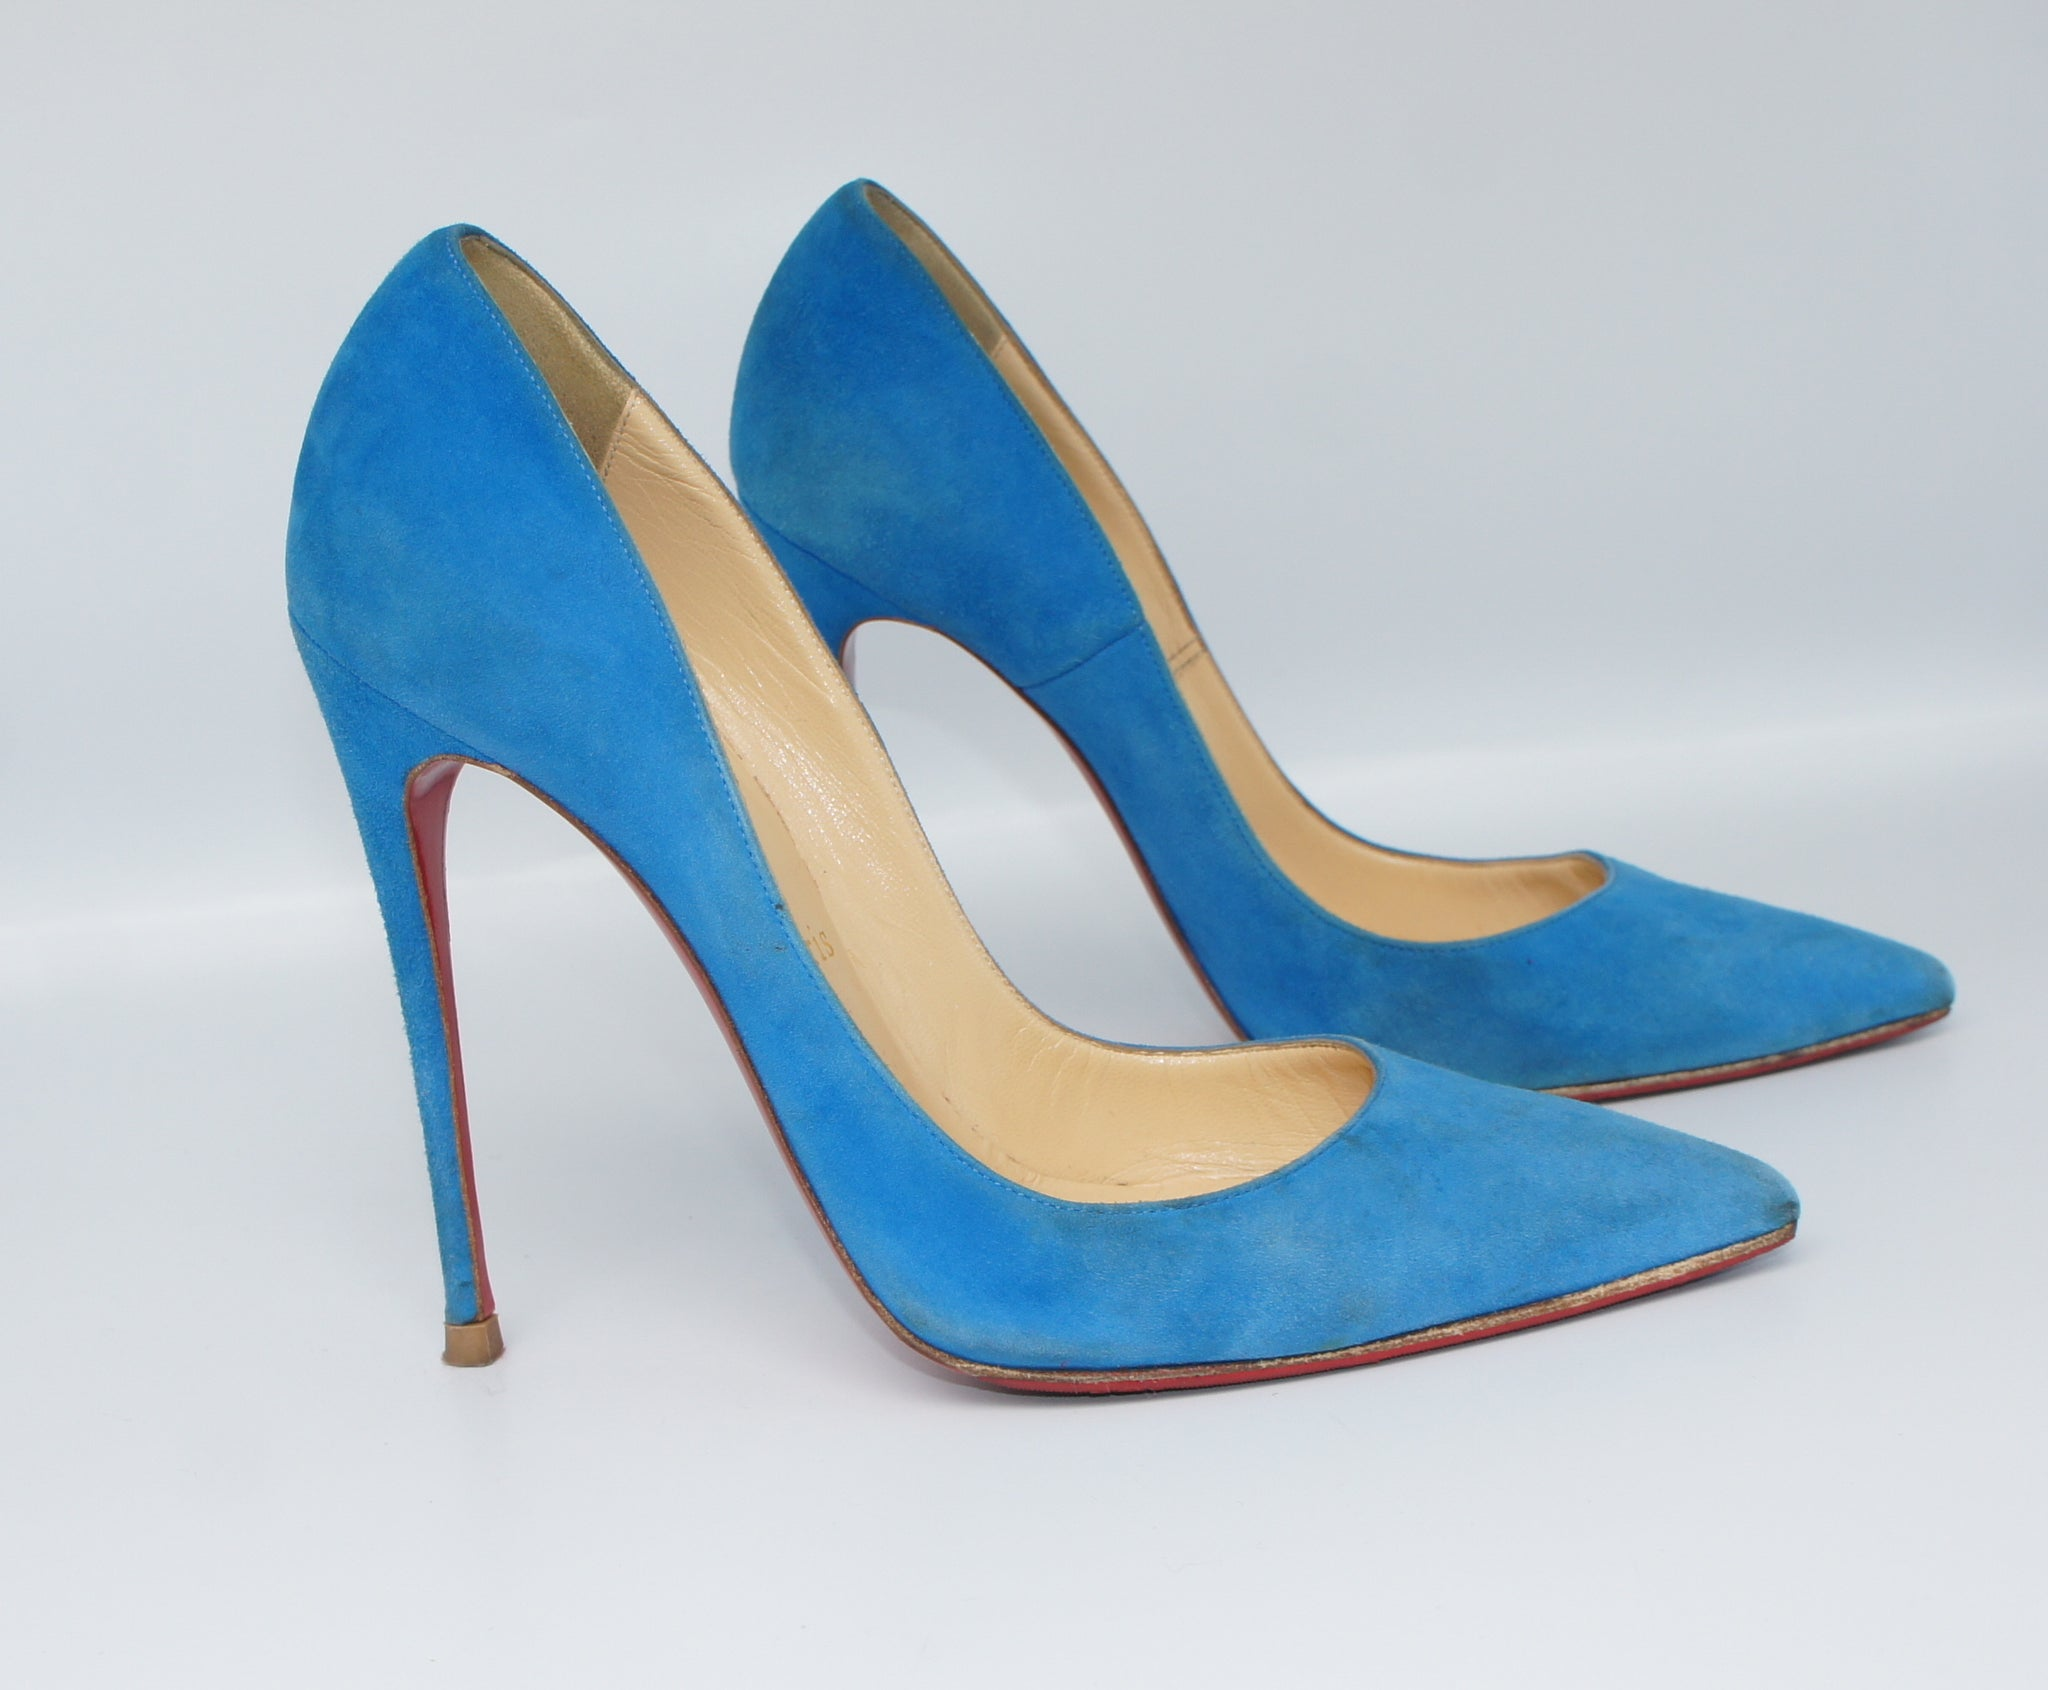 finest selection d9c2f dde21 Christian Louboutin So Kate Blue Suede, 38,5